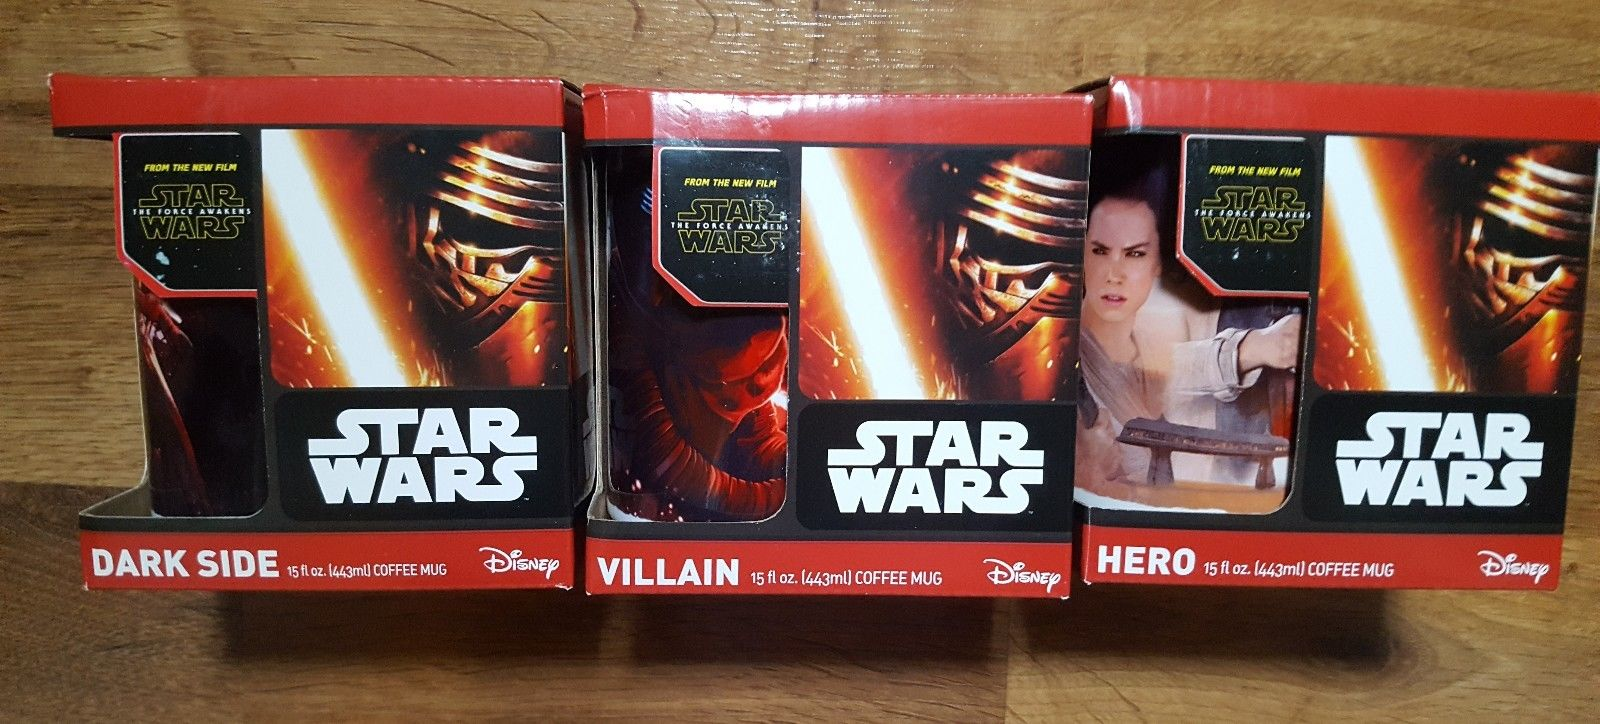 Star Wars The Force Awakens Hero, Villain & Dark Side 3 Mug Lot